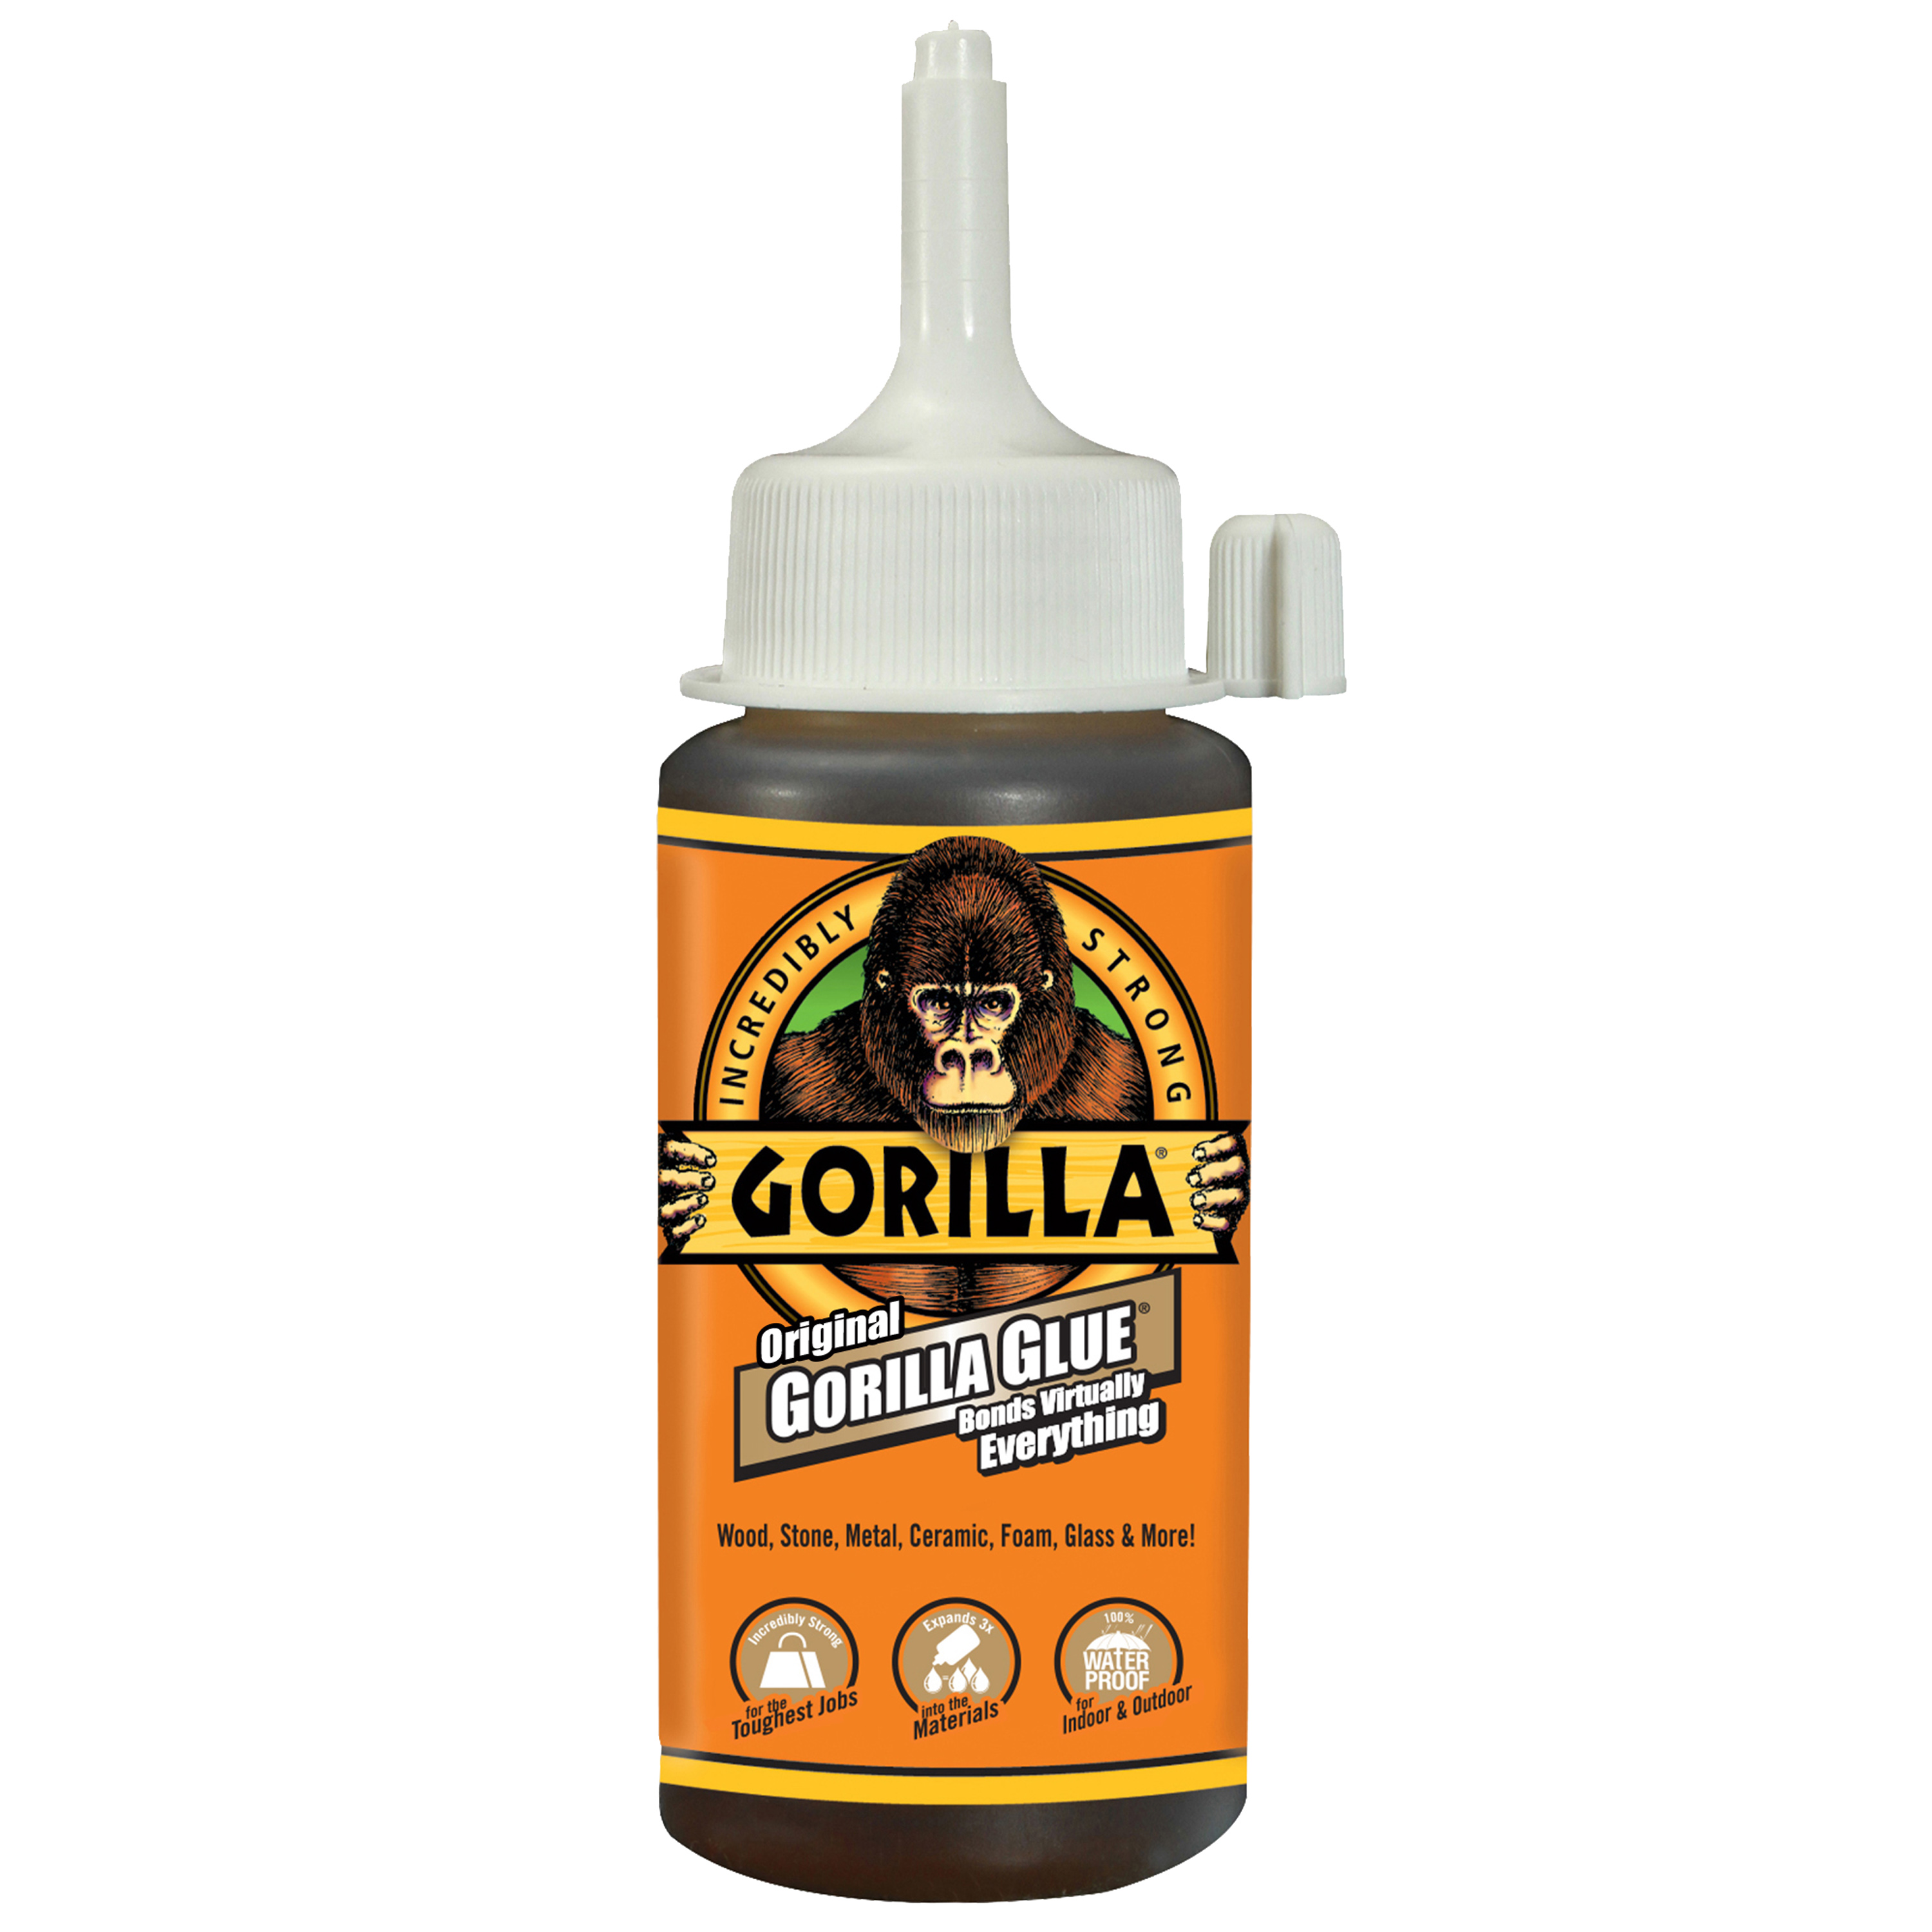 Gorilla Glue Original, 4oz.